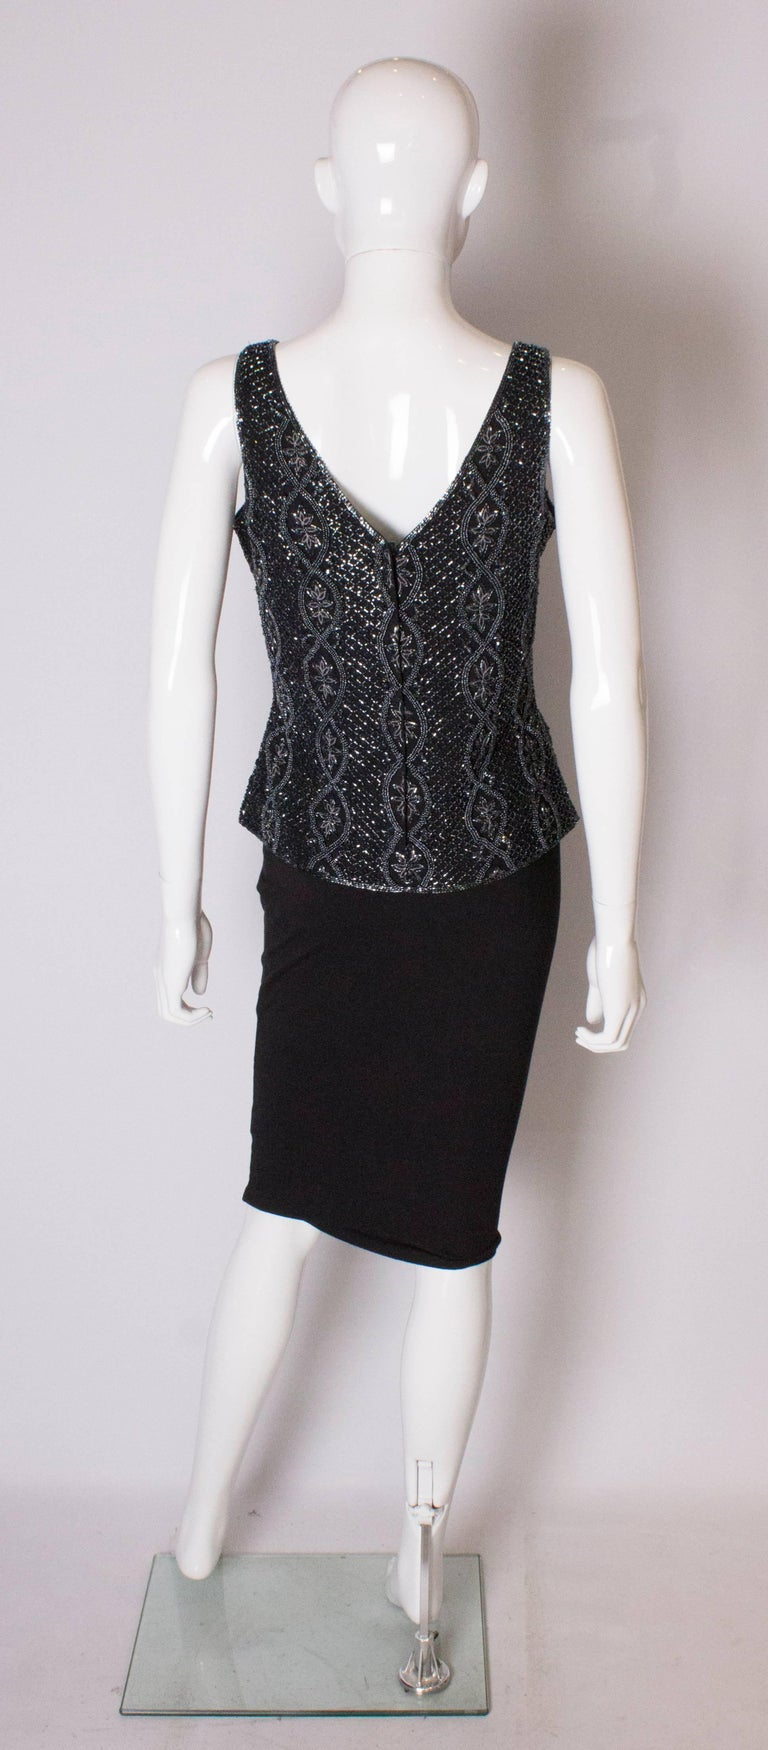 A Vintage 1980s black Beaded Evening Top by Adrianna Papelle For Sale 2